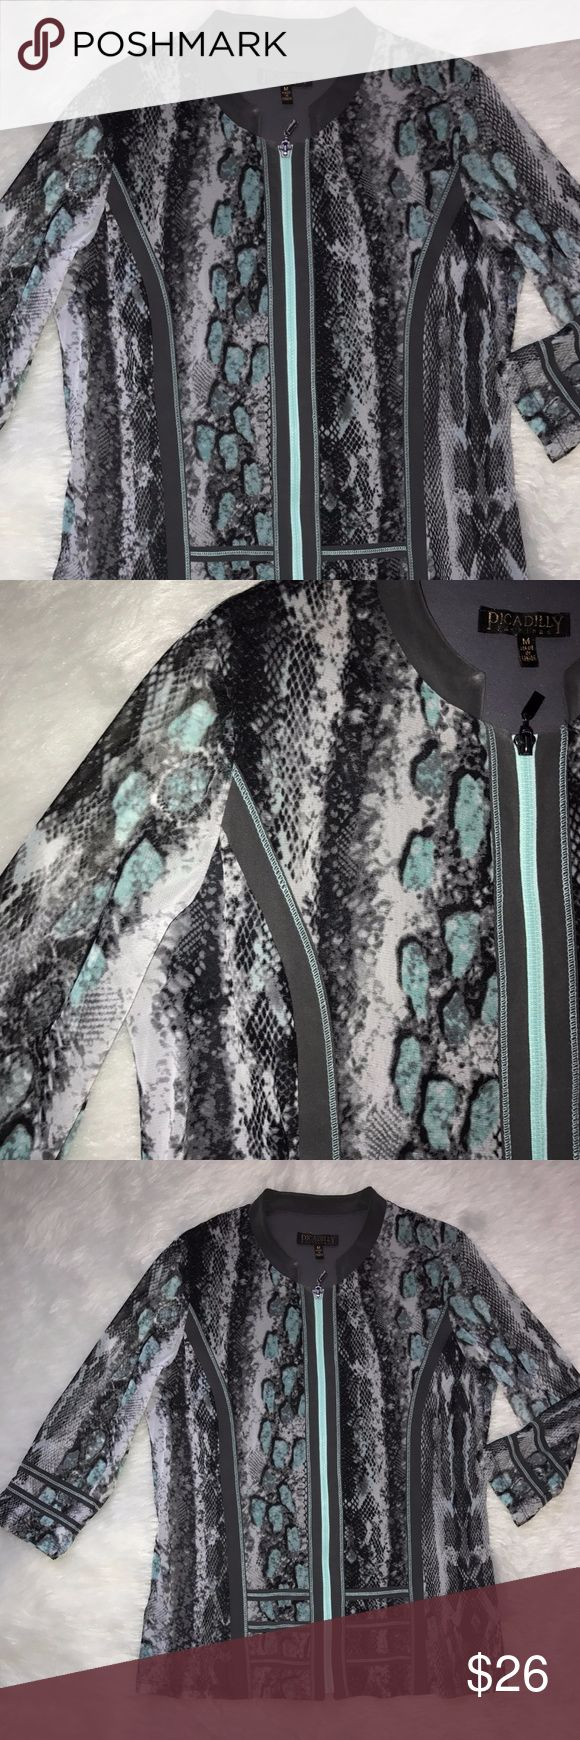 Picadilly Fashions Snake Skin zip up jacket Casual Women's size Medium Snake Skin Print  Lightweight Jacket  Full zip up Multi-color greens teal gray and silver Sheer material with gray underlinuinbg 3/4 sleeve Sporty and classy  Made in  Canada Picadilly Fashion Jackets & Coats